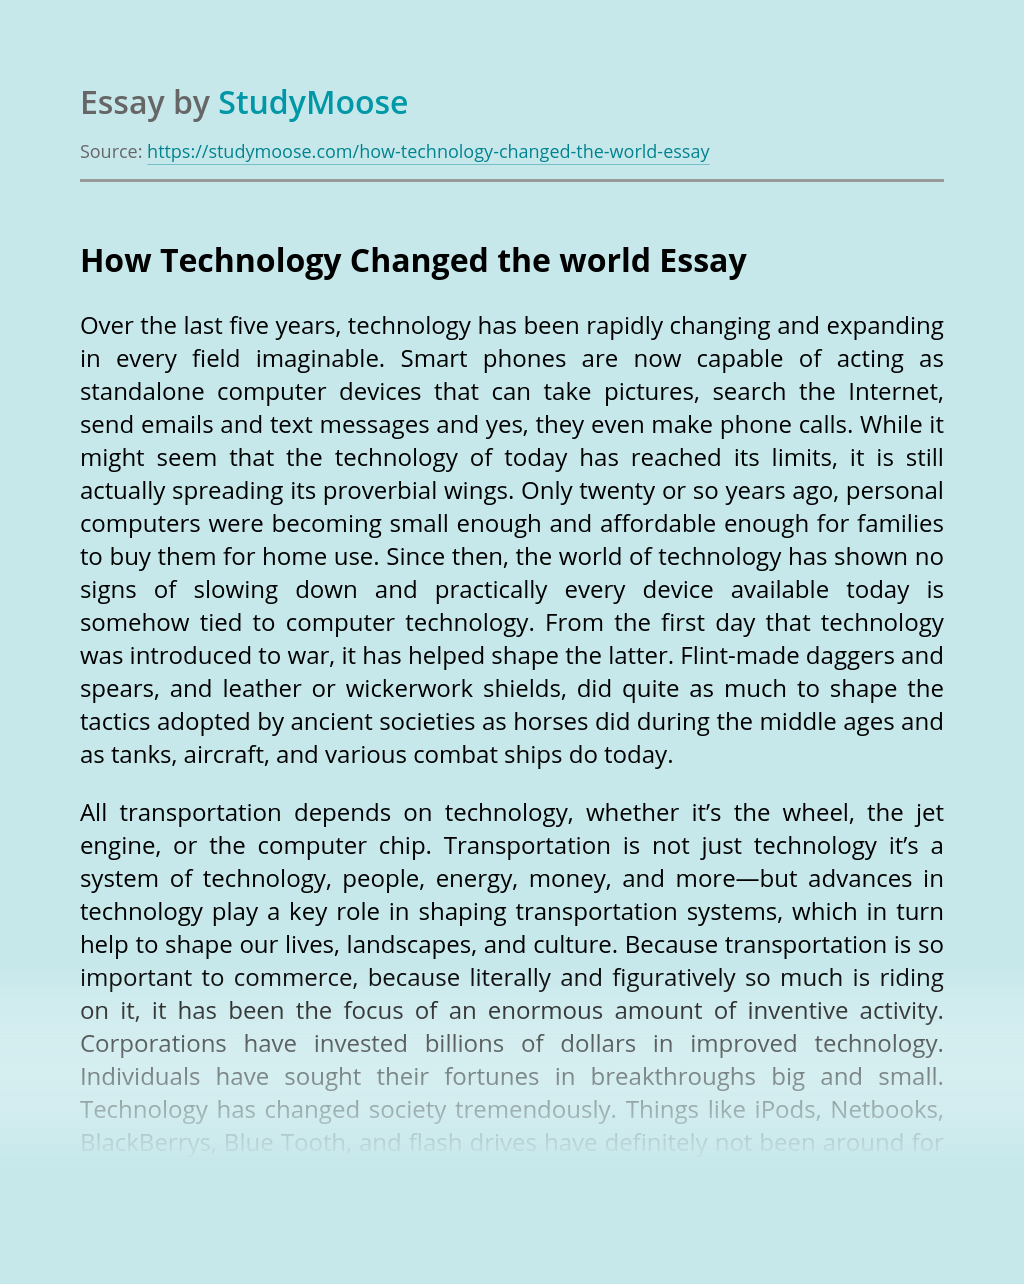 How Technology Changed the world